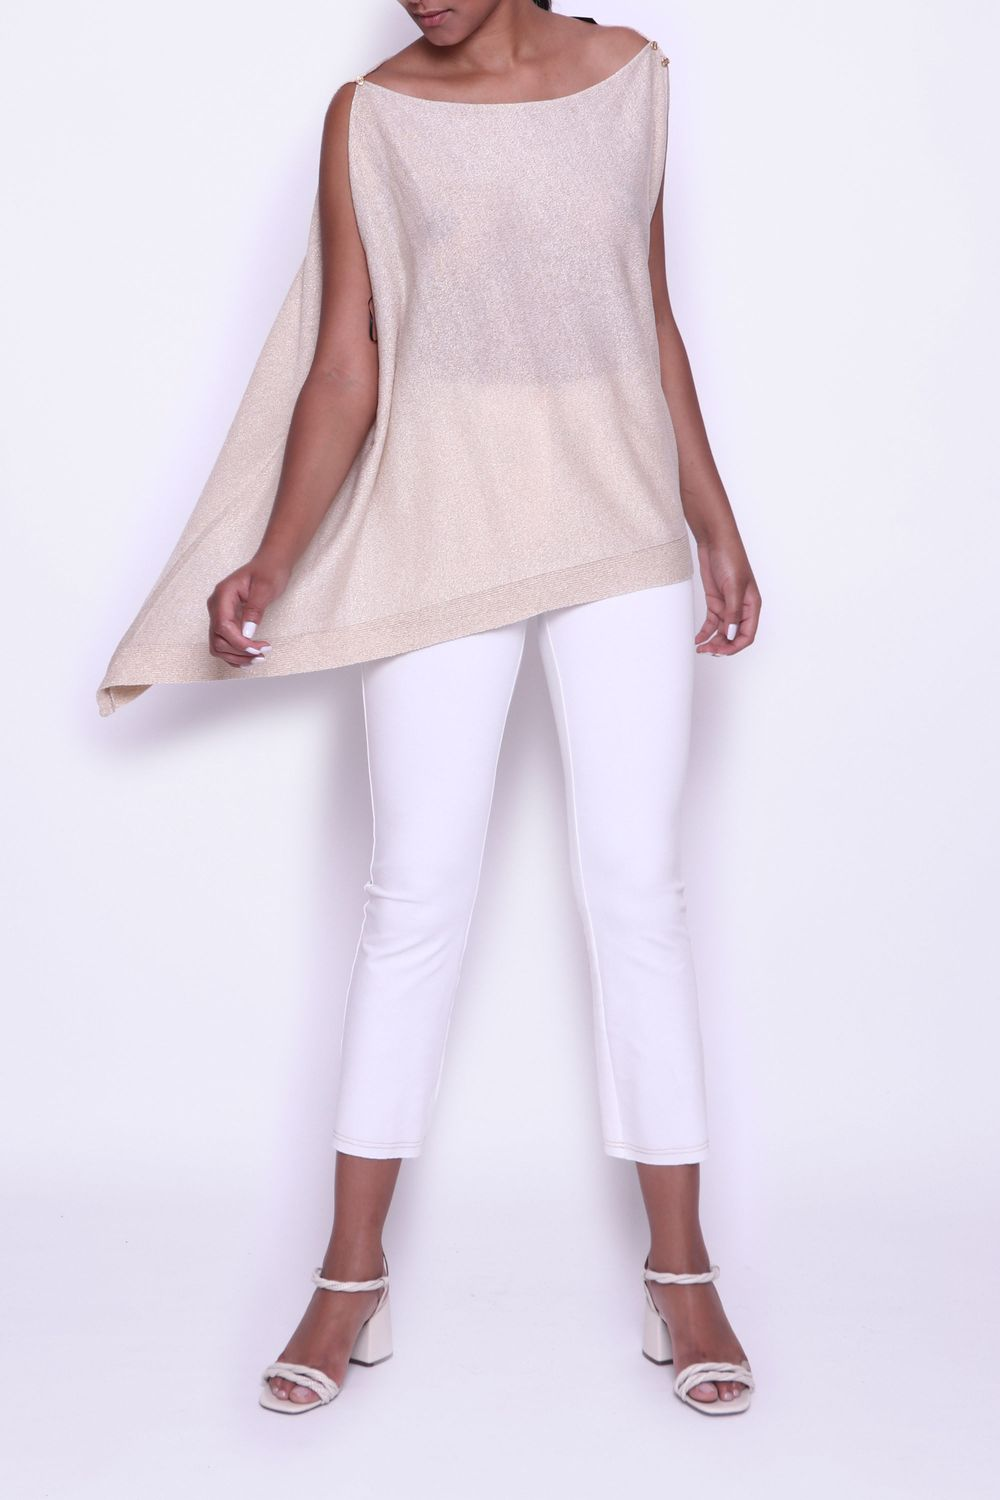 TR-BLUSA-F-BOTOES-BICO-OURO